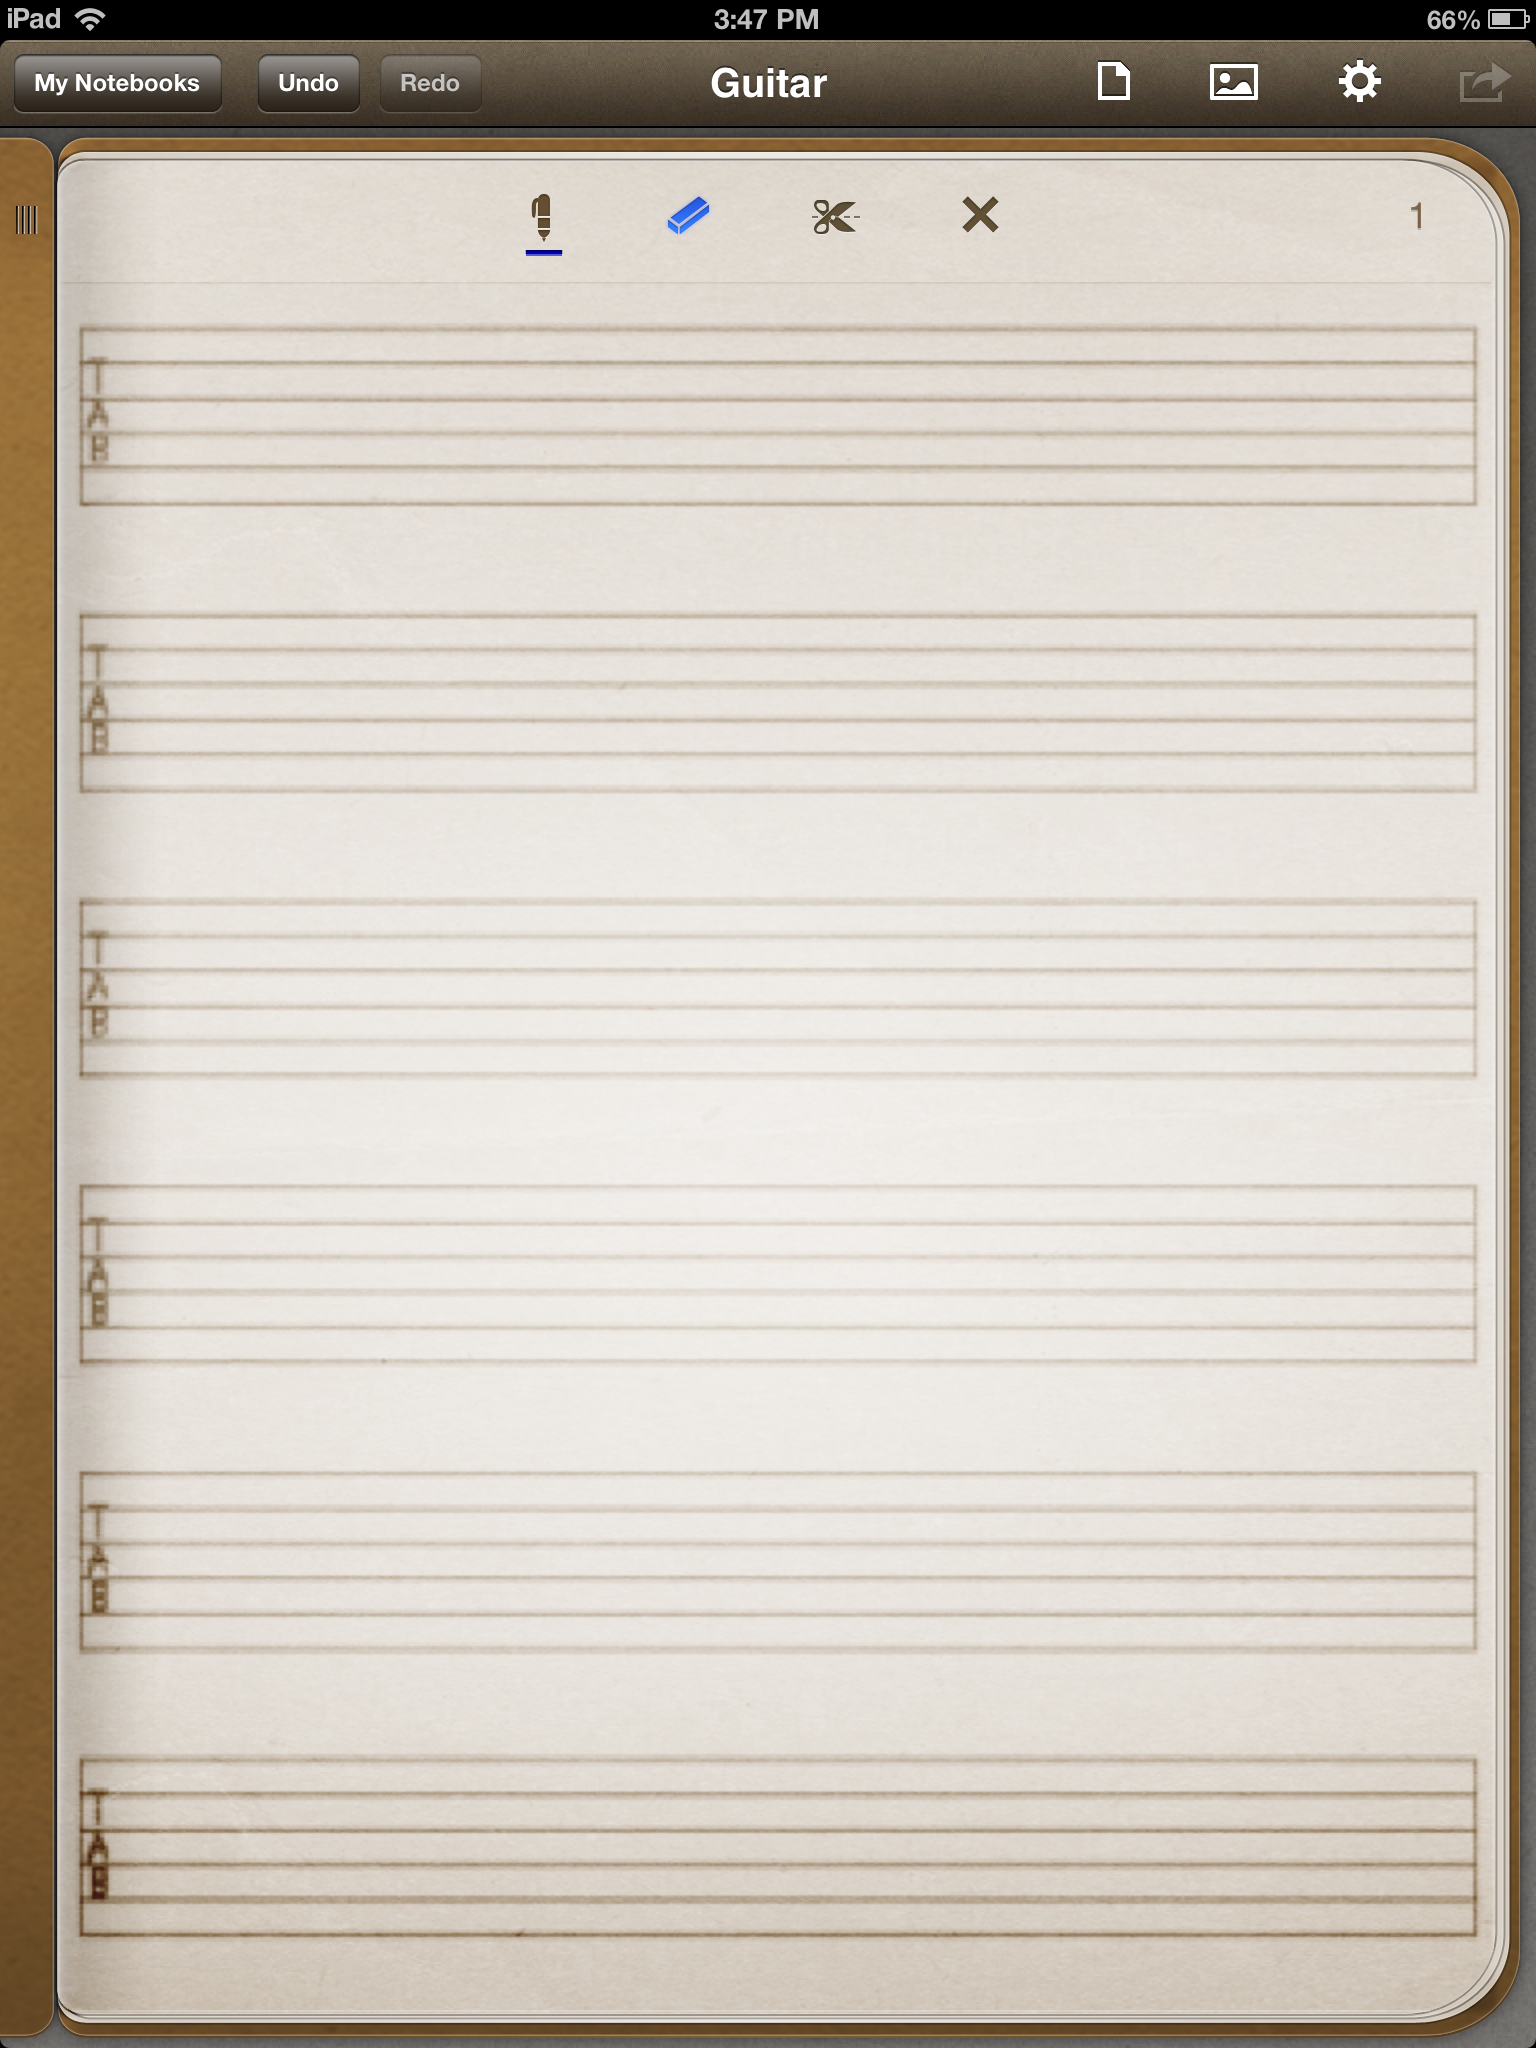 Guitar tabs template